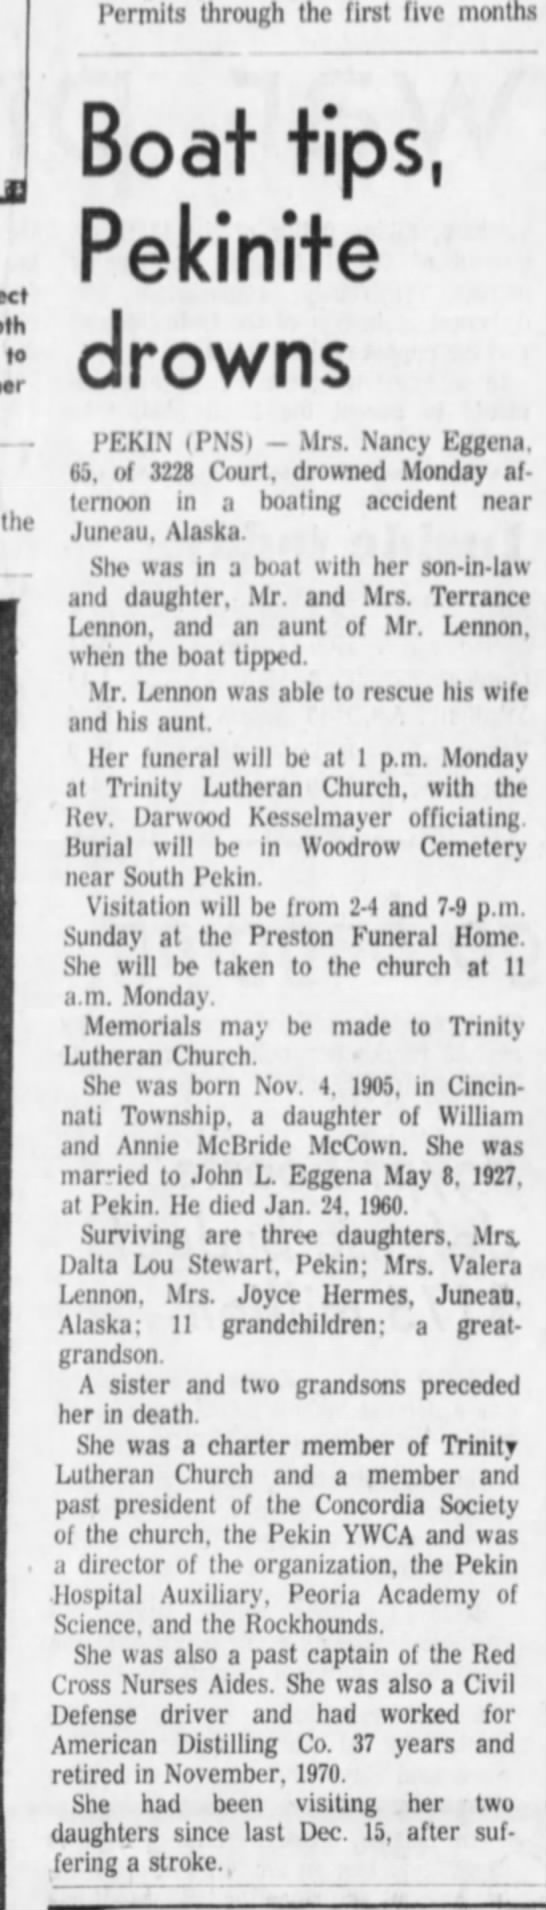 Obit Nancy Mccown Eggena - A Permits through the first five months to the...